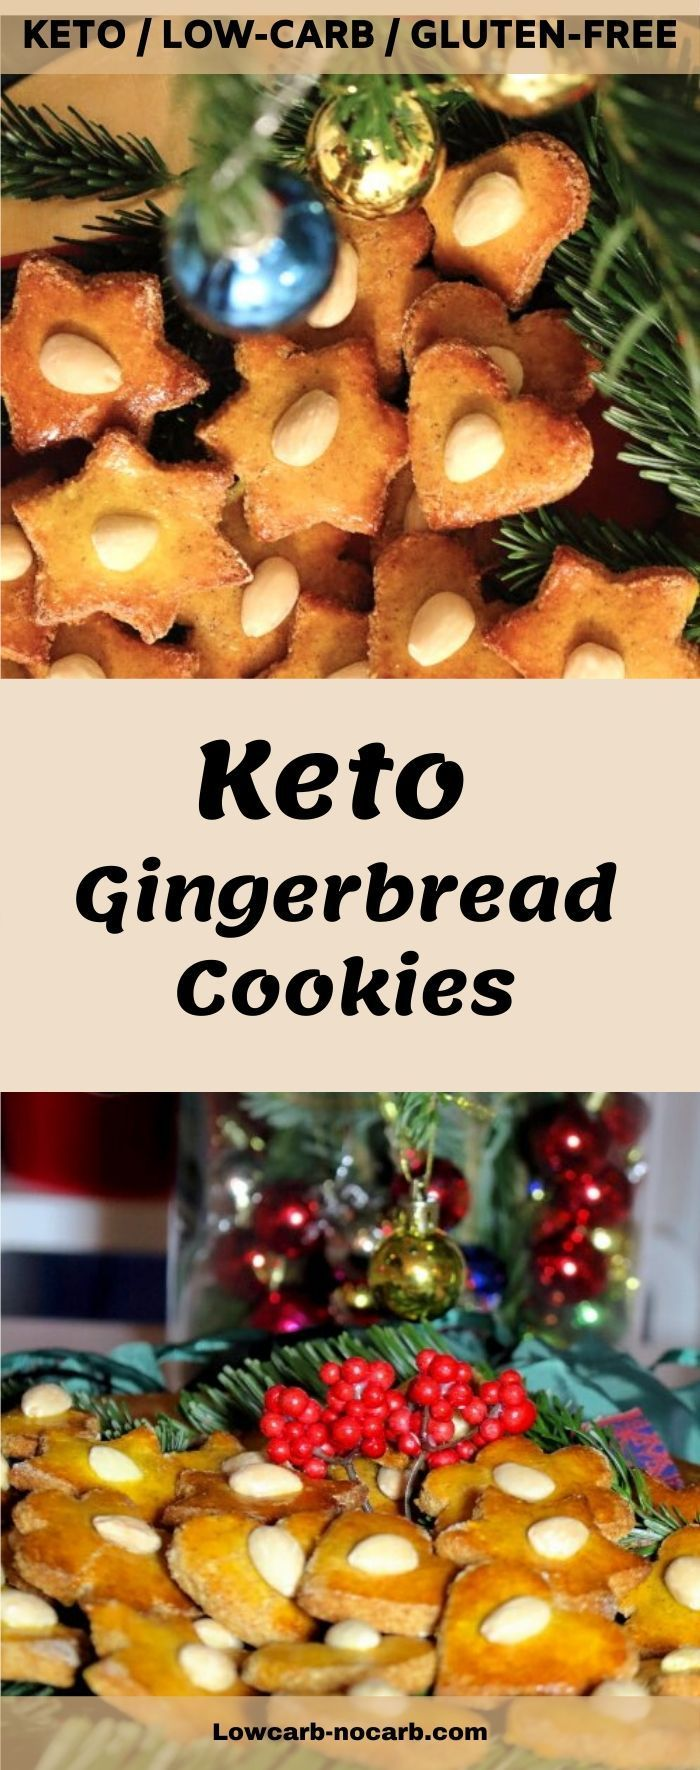 Low Carb Gingerbread Cookies are always a must on our Christmas table #gingerbreadcookies